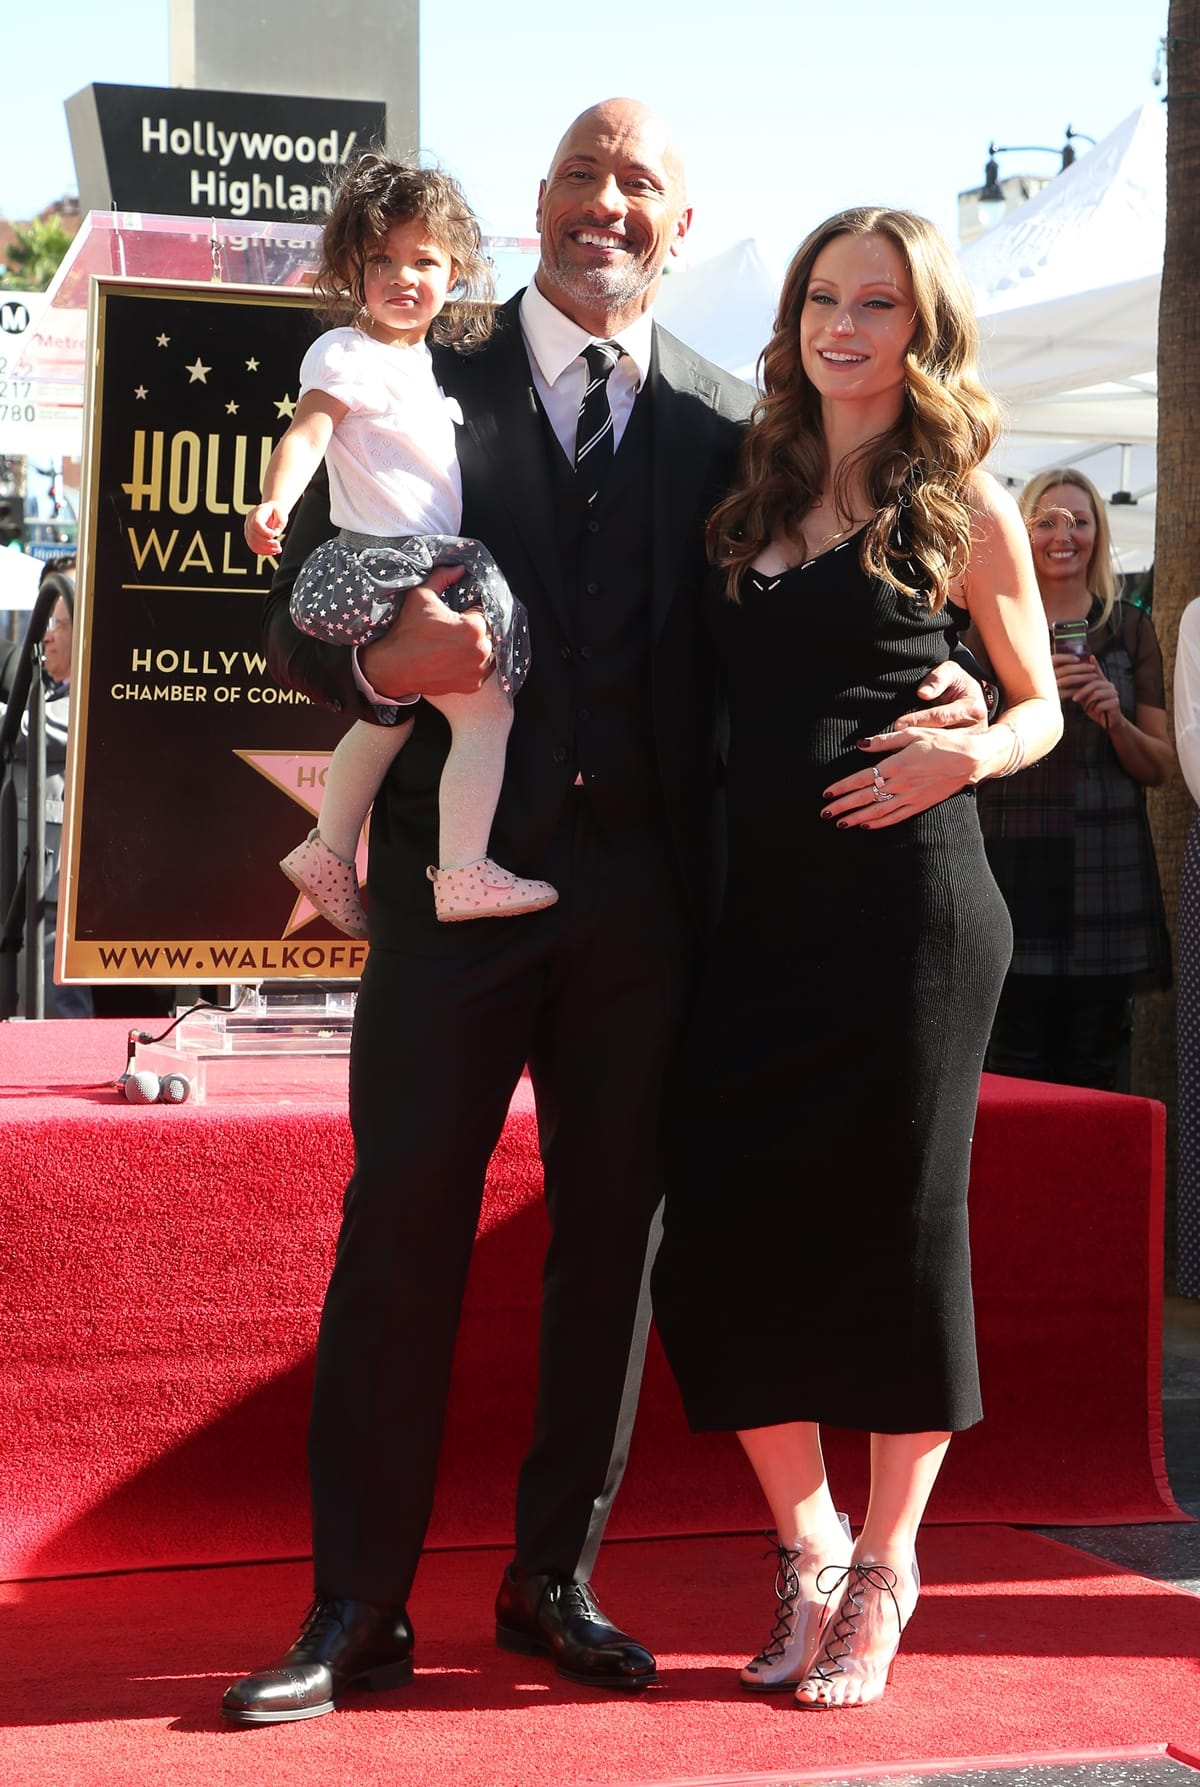 """Dwayne """"The Rock"""" Johnson celebrates his star on the Hollywood Walk of Fame with his pregnant girlfriend Lauren Hashian and their 1-year-old daughter Jasmine"""